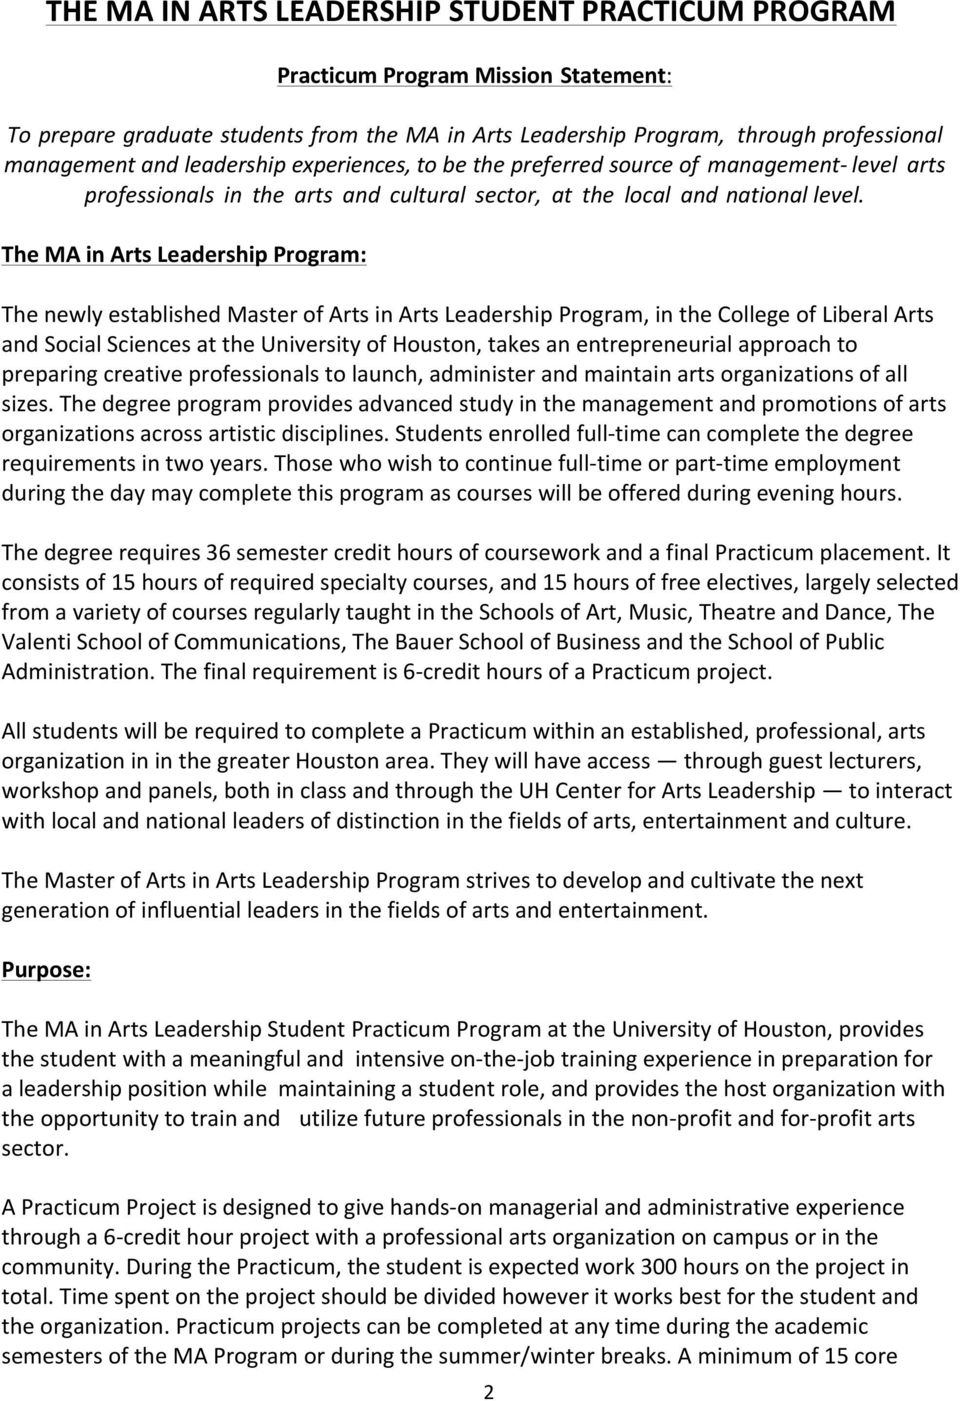 The MA in Arts Leadership Prgram: The newly established Master f Arts in Arts Leadership Prgram, in the Cllege f Liberal Arts and Scial Sciences at the University f Hustn, takes an entrepreneurial